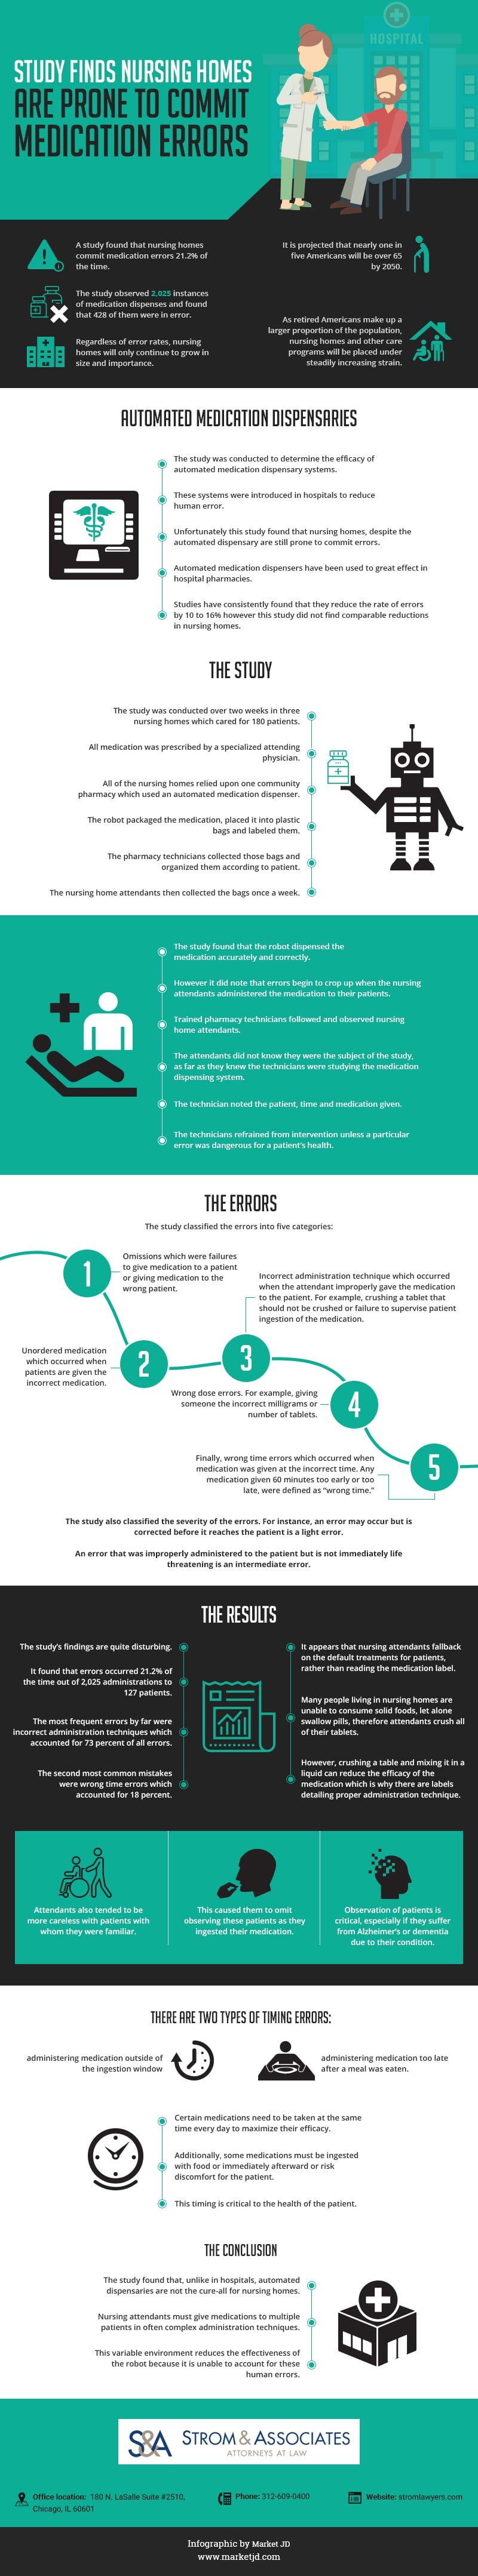 Nursing homes prone to medication errors infographic